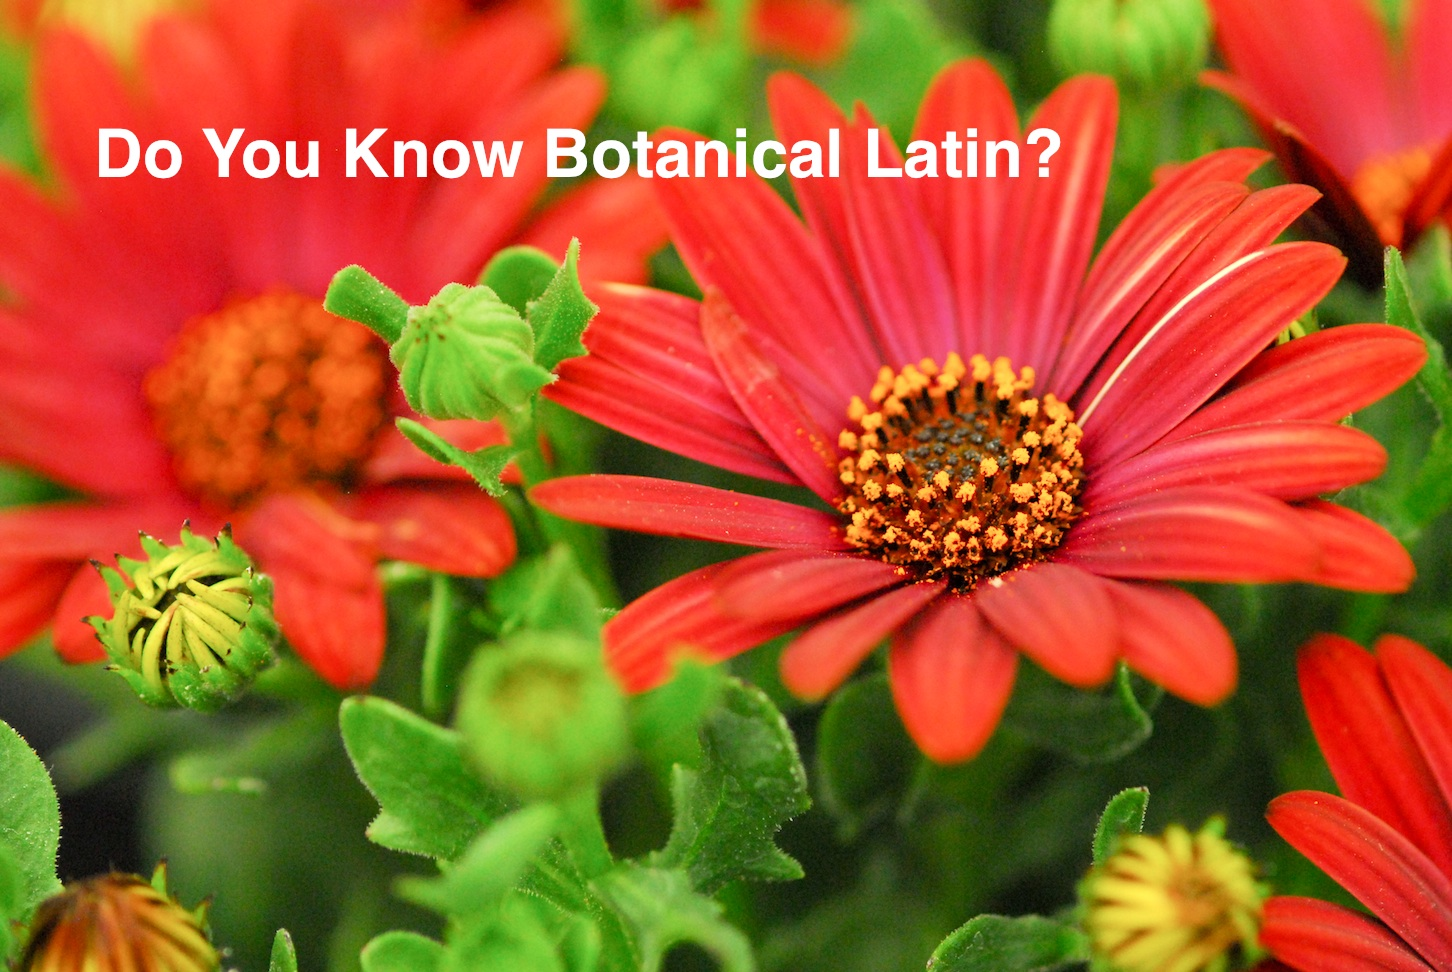 Do you know botanical latin